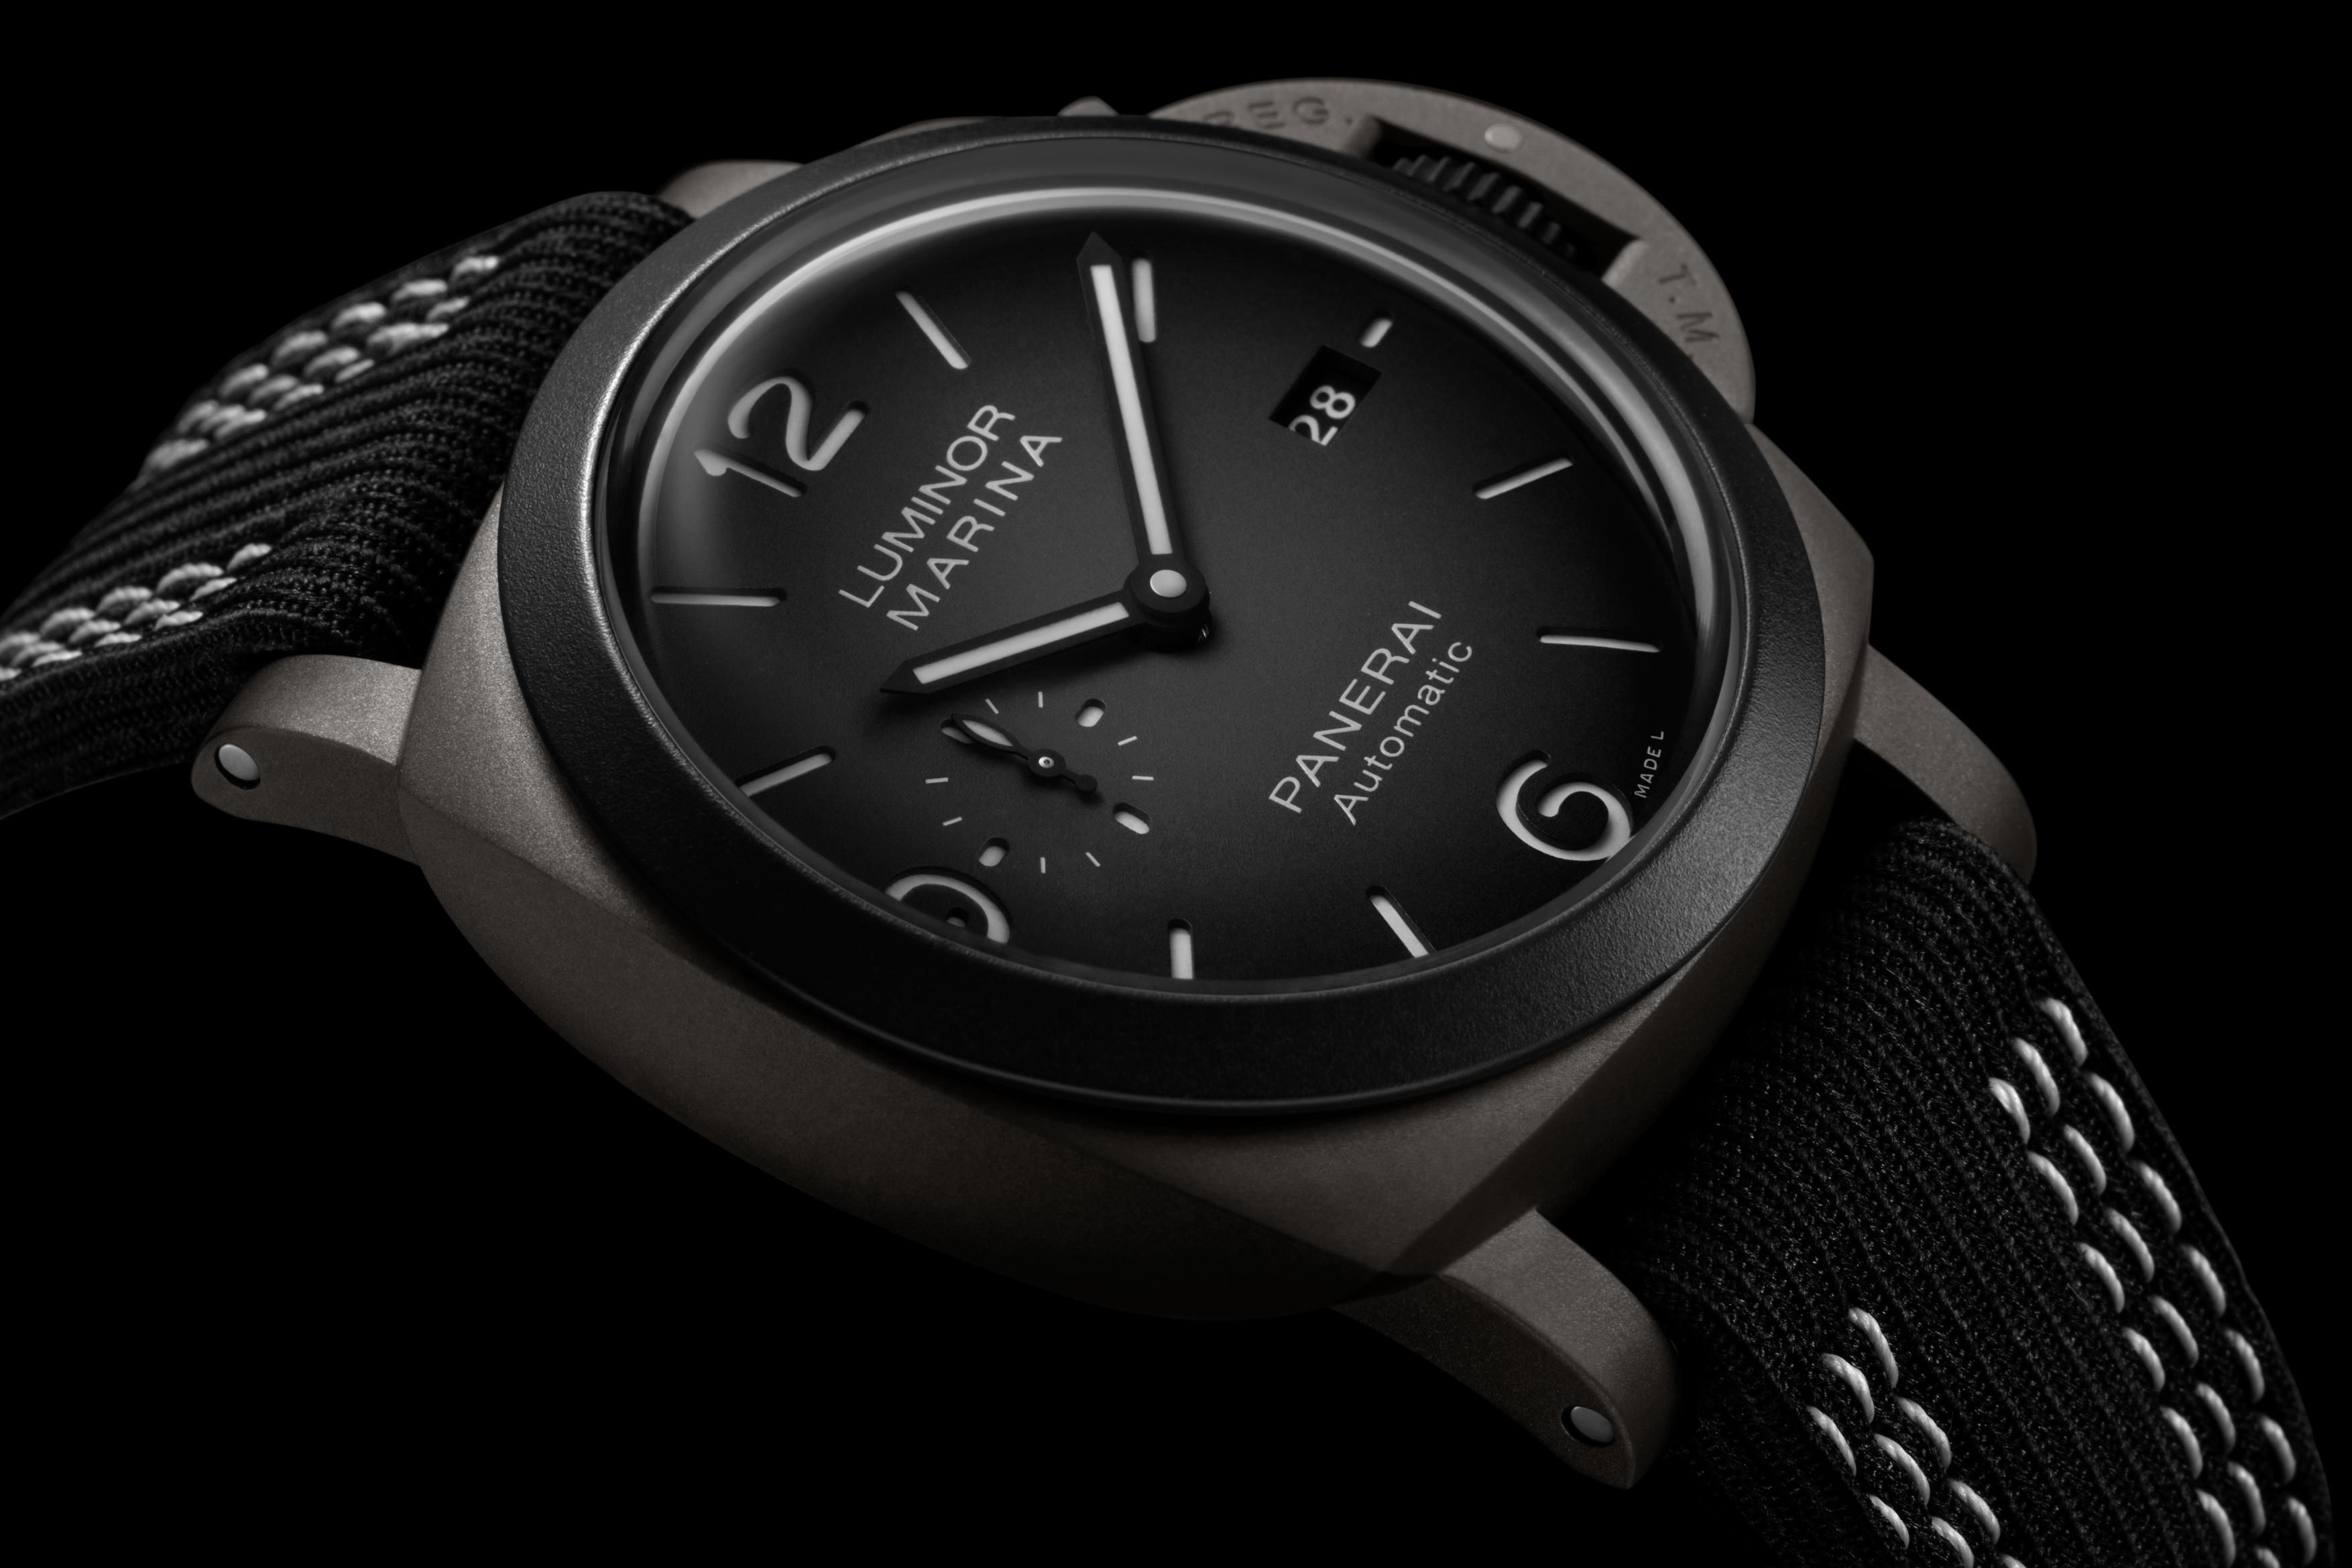 Panerai's New Watch Is Worth Holding Your Breath For